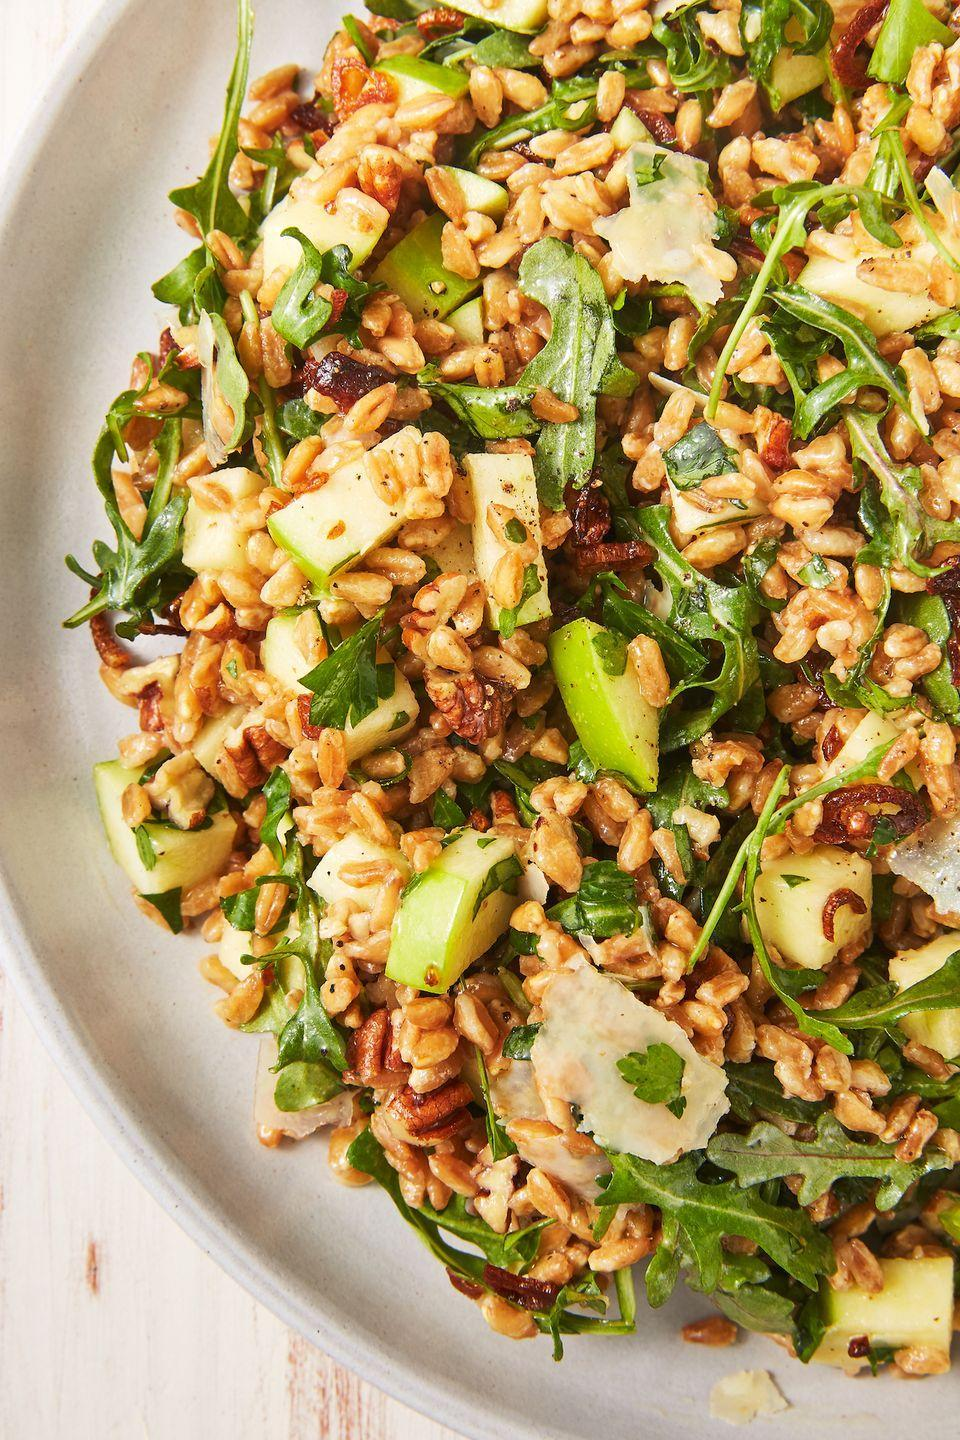 """<p>If you're not familiar with this toothsome grain — be prepared to fall in love.</p><p>Get the recipe from <a href=""""https://www.delish.com/cooking/recipe-ideas/recipes/a43059/best-farro-salad-recipe/"""" rel=""""nofollow noopener"""" target=""""_blank"""" data-ylk=""""slk:Delish"""" class=""""link rapid-noclick-resp"""">Delish</a>.</p>"""